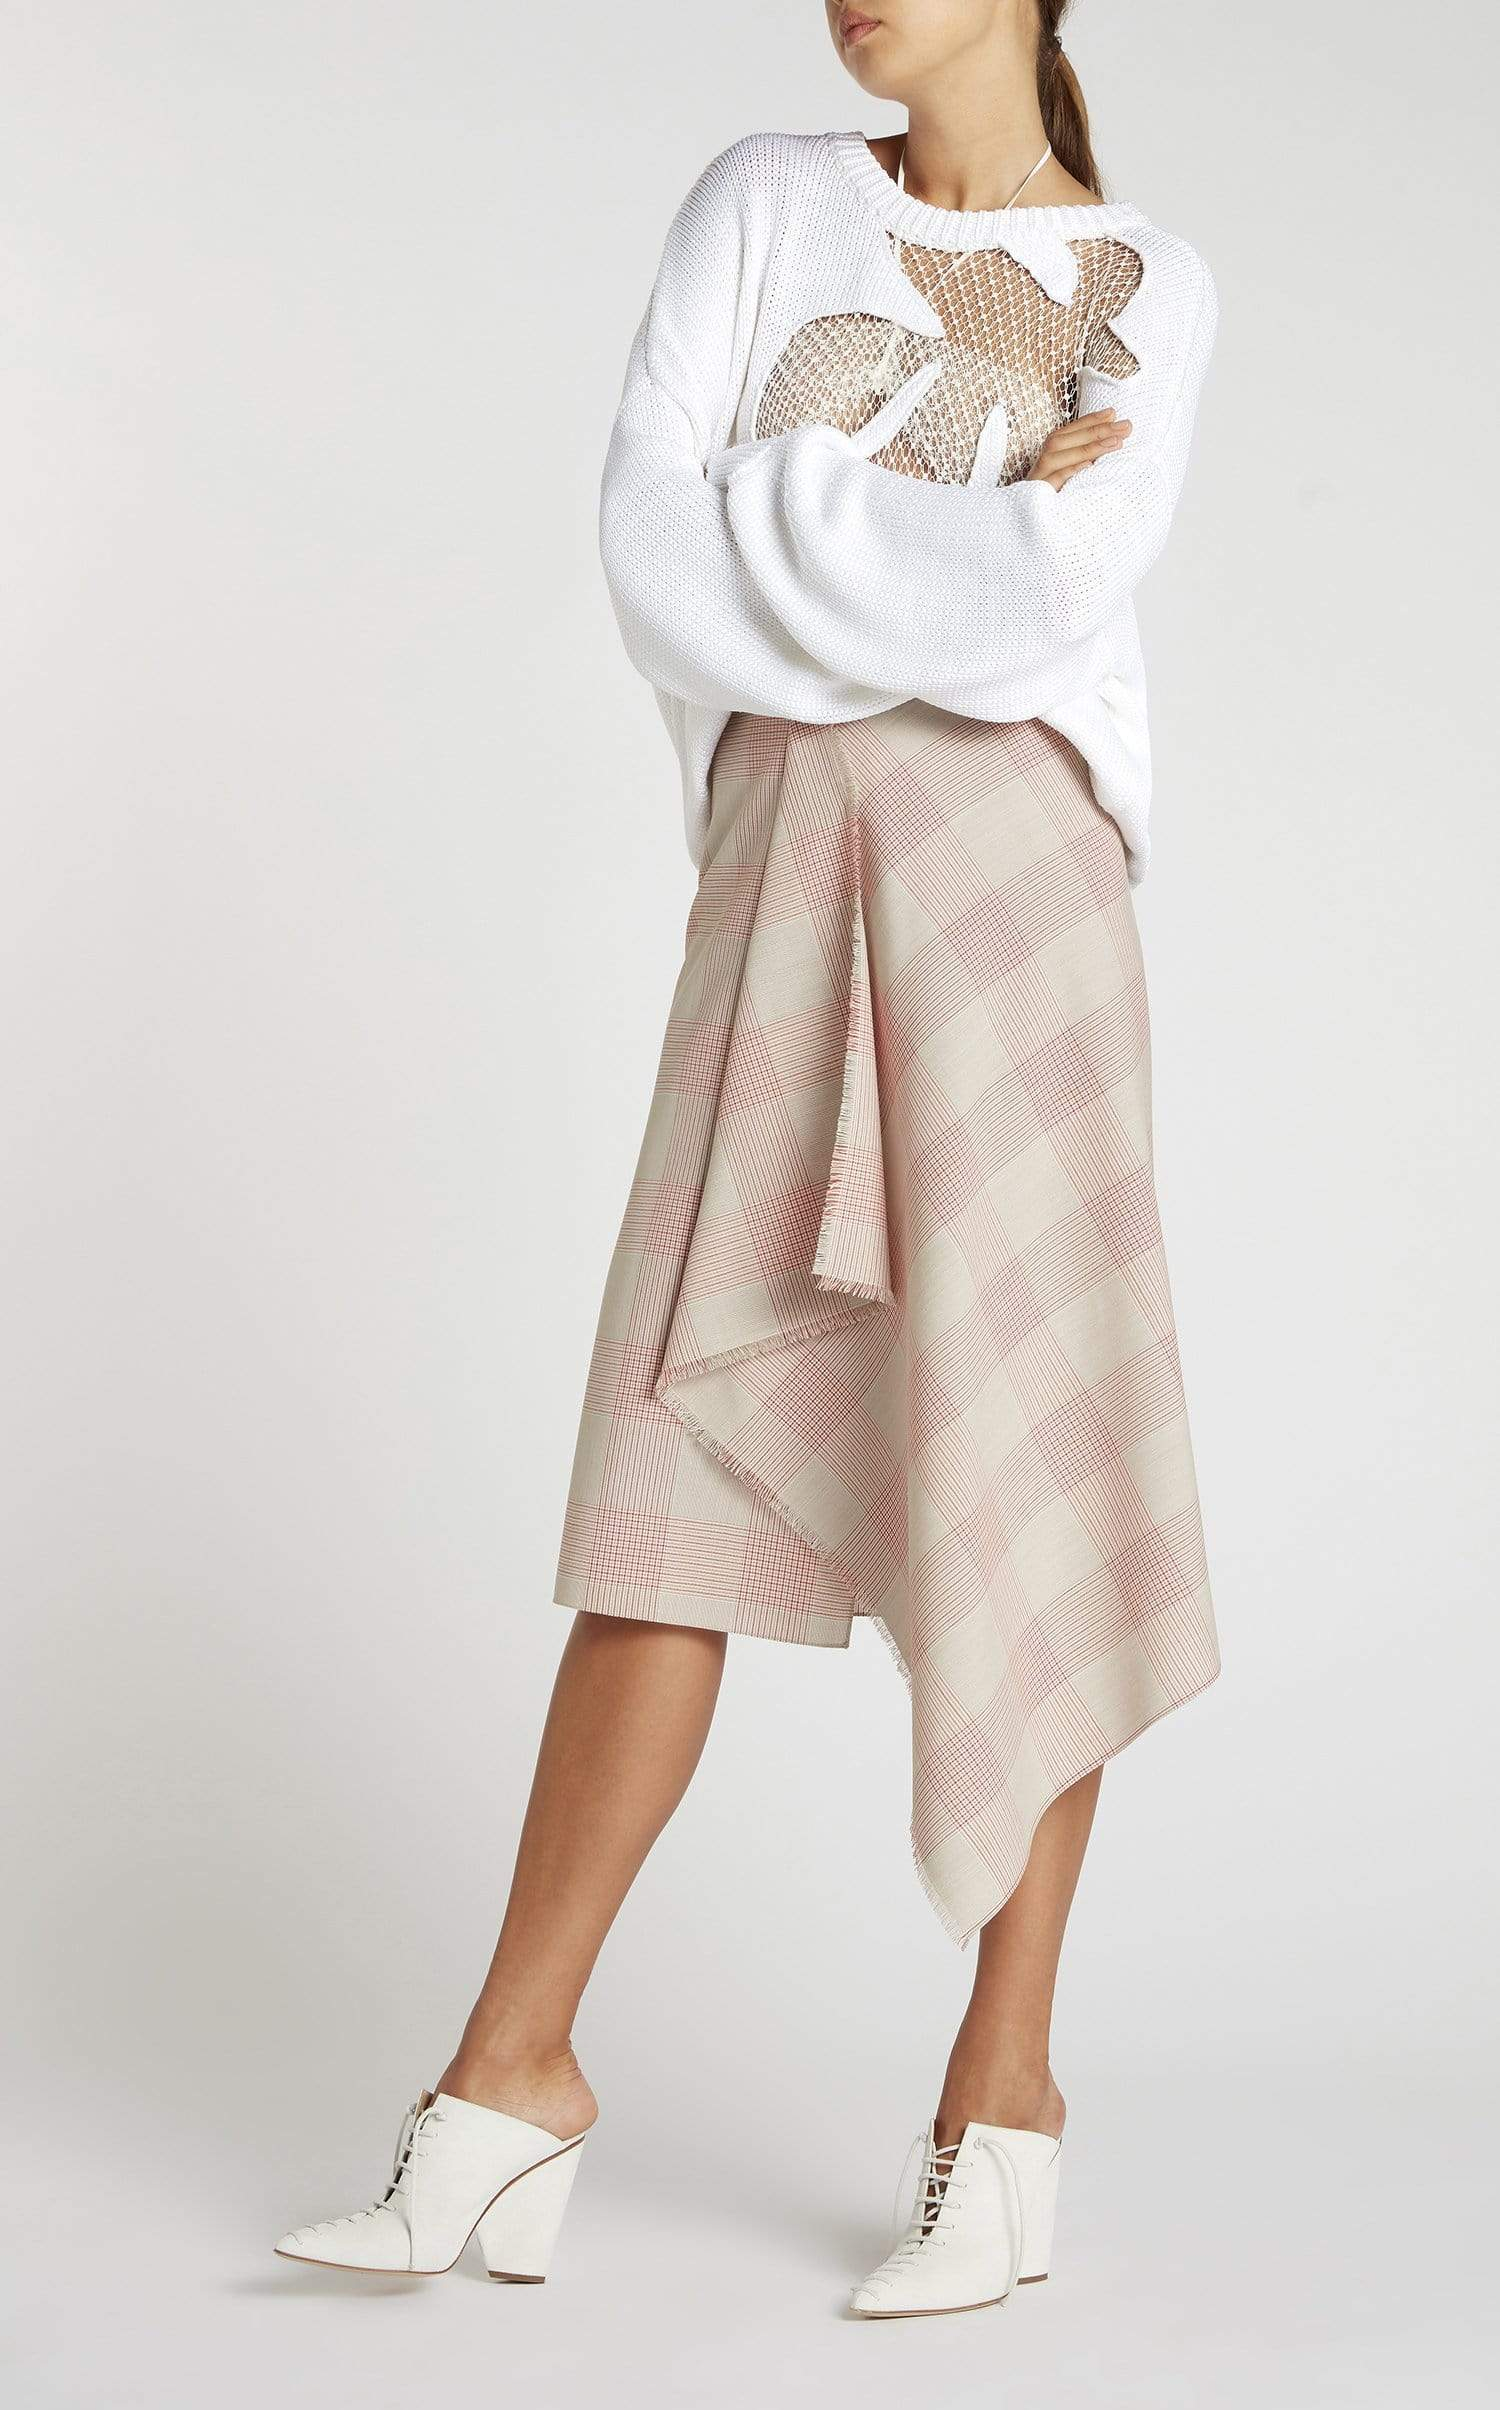 Panama Skirt In Oatmeal from Roland Mouret